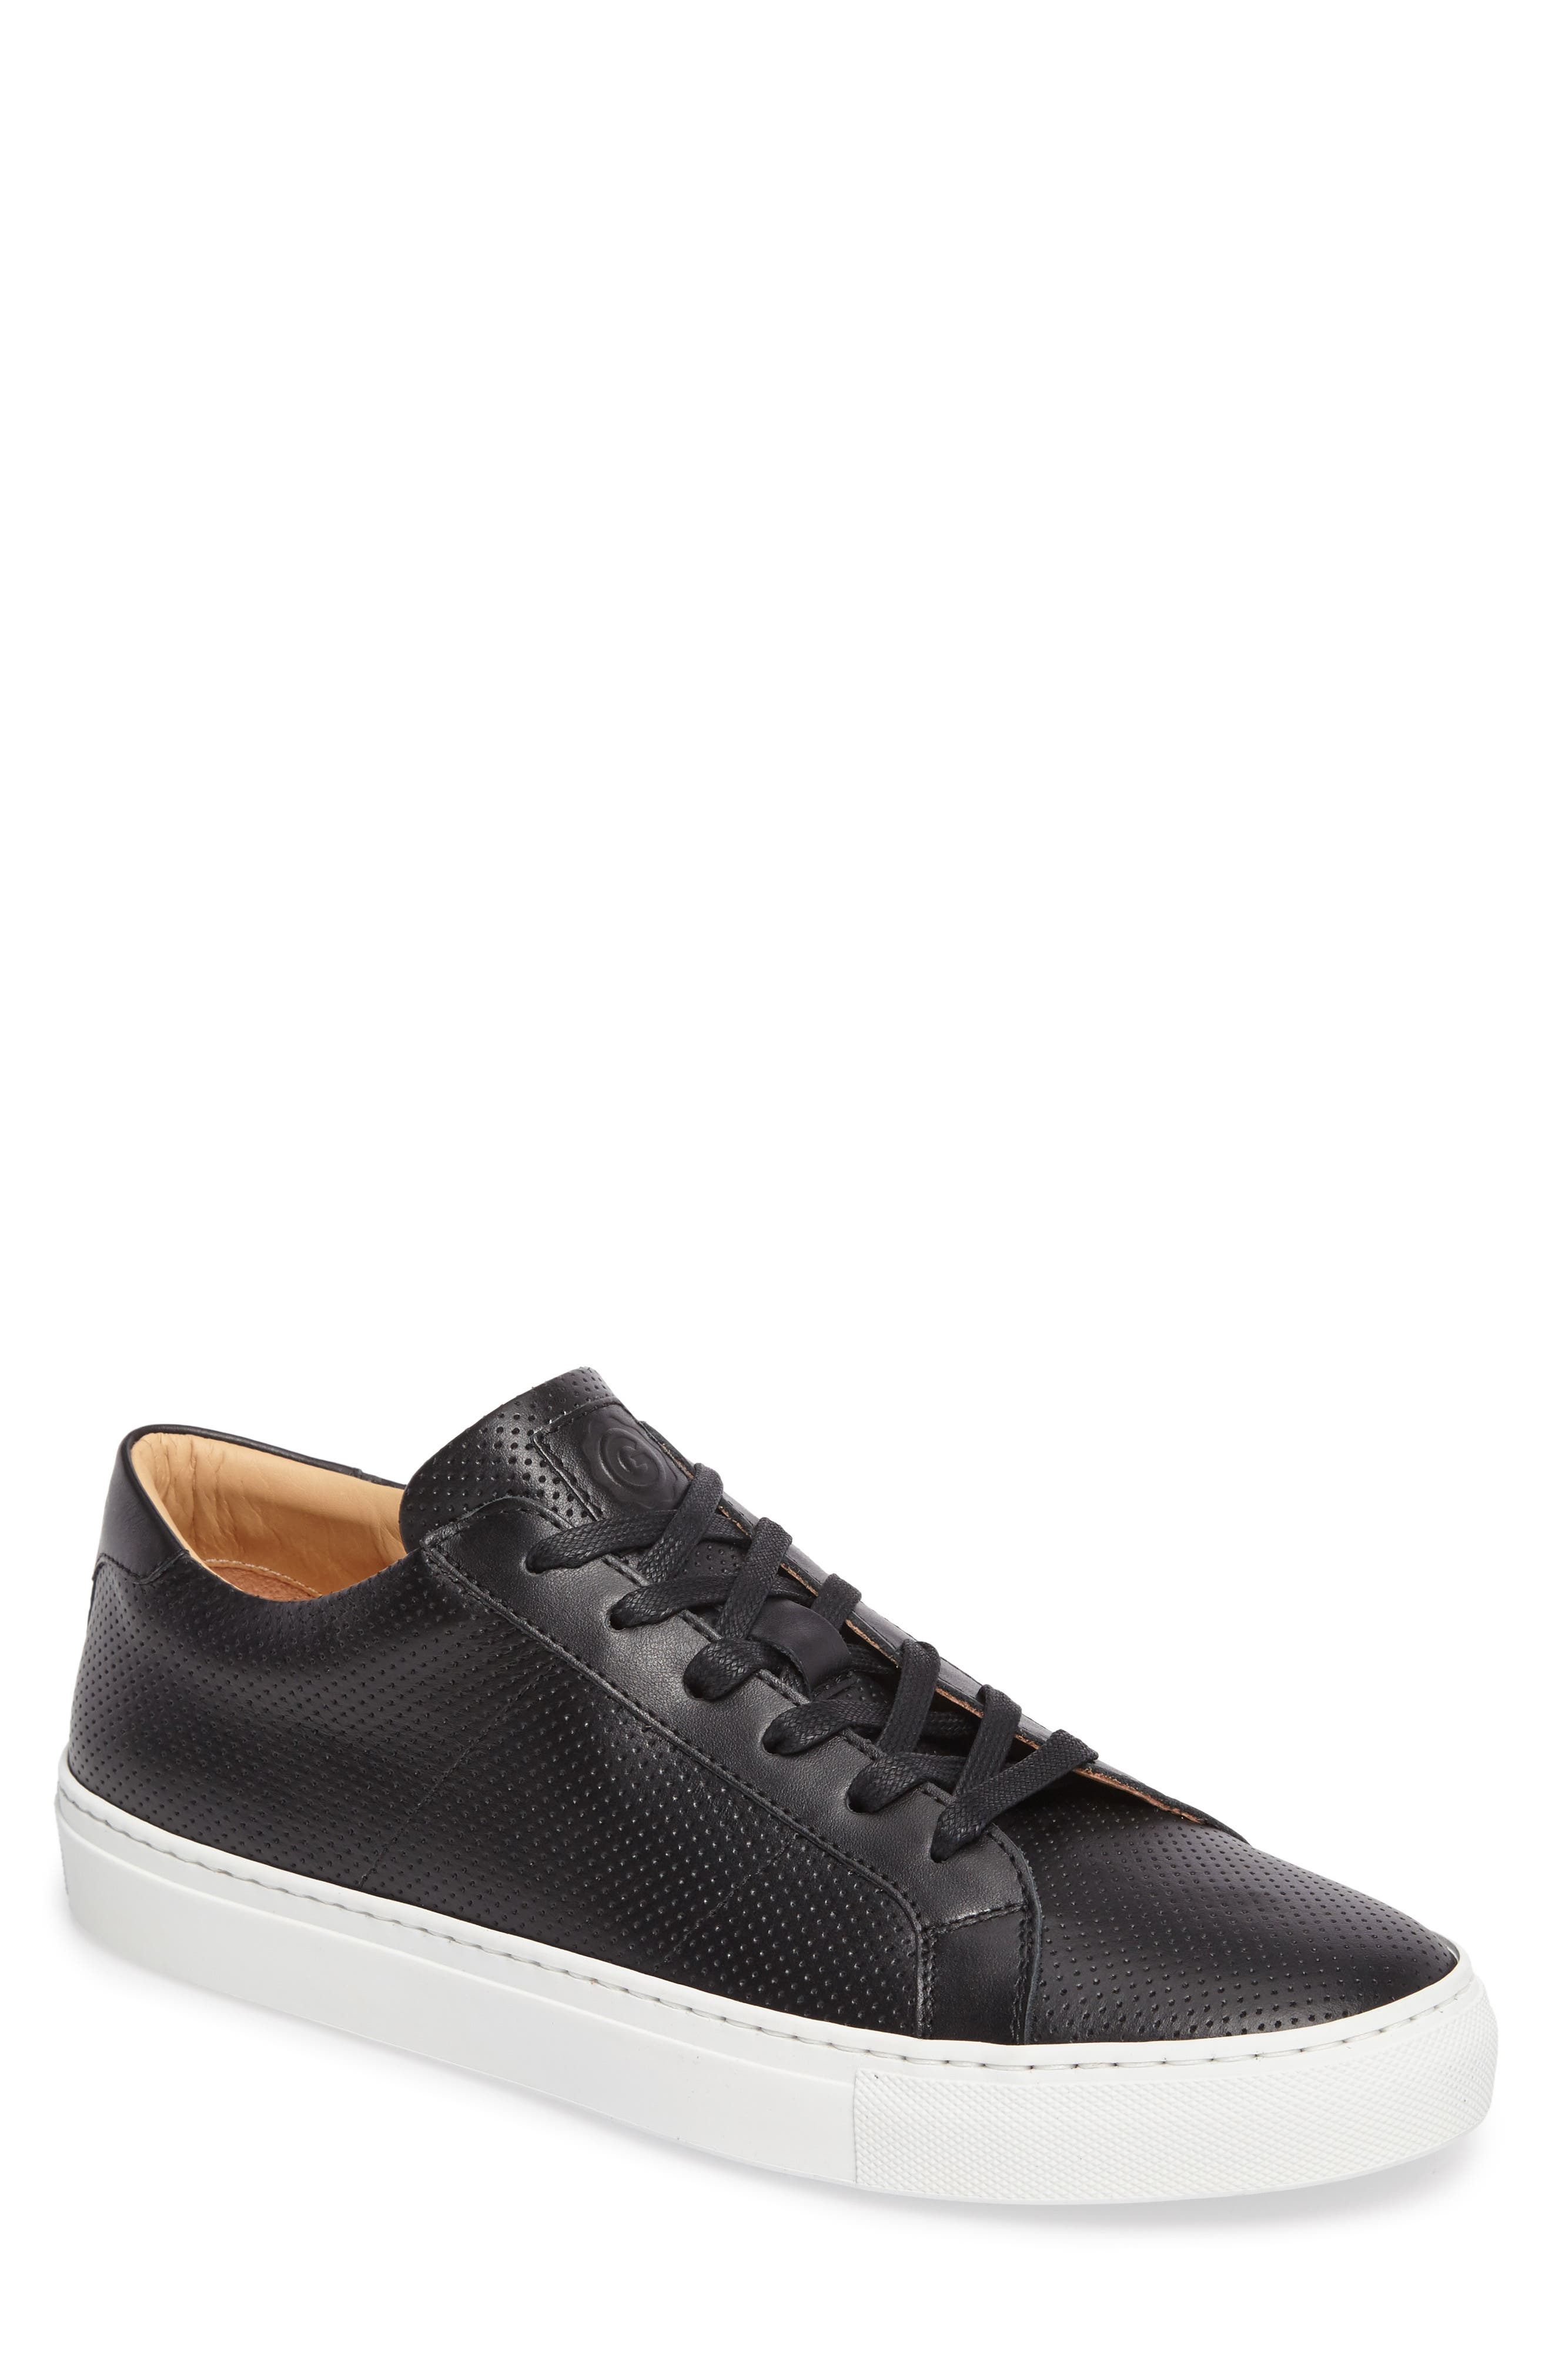 Royale Perforated Low Top Sneaker, Main, color, 001